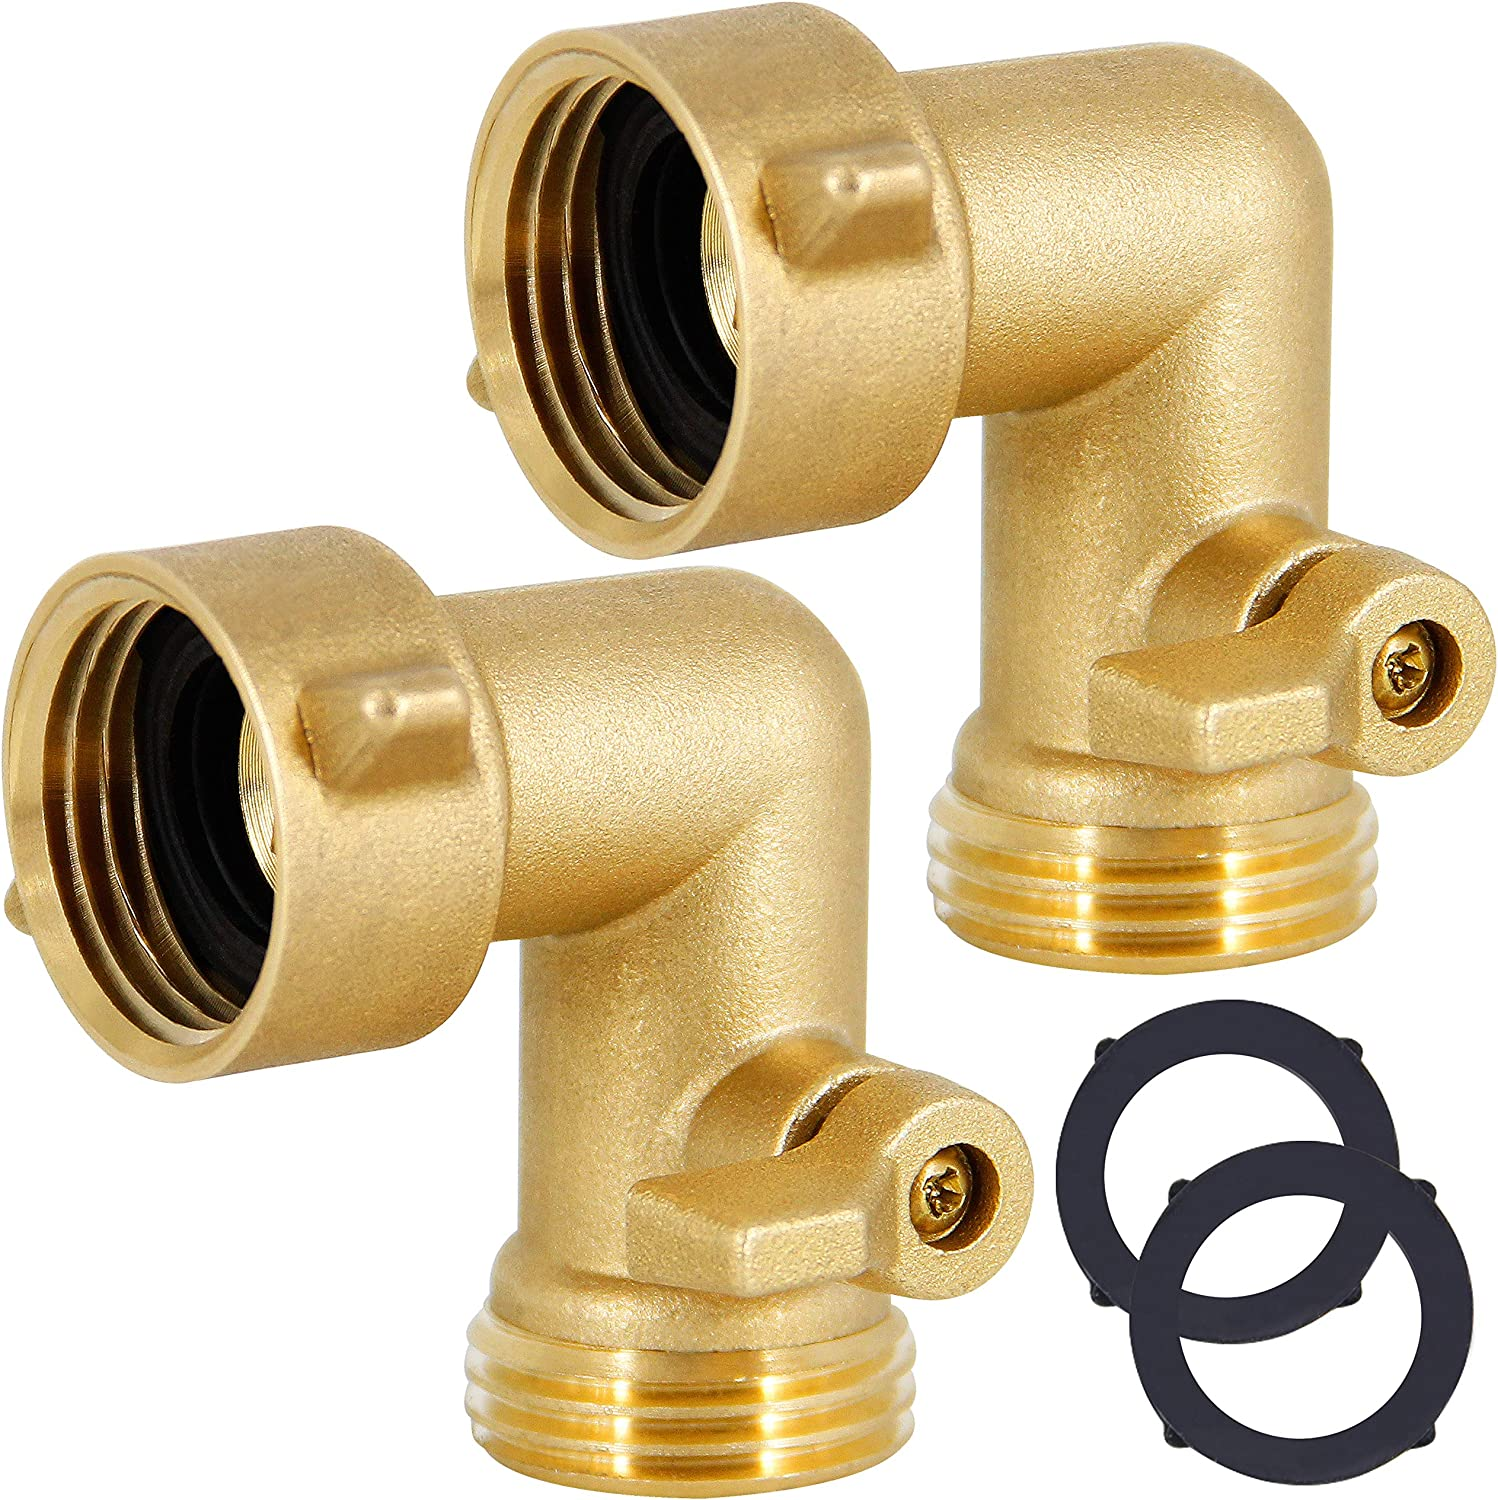 Lifynste Garden Hose Elbow Connector, 90 Degree Brass Garden Hose Elbow Adapter with Shut Off Valves